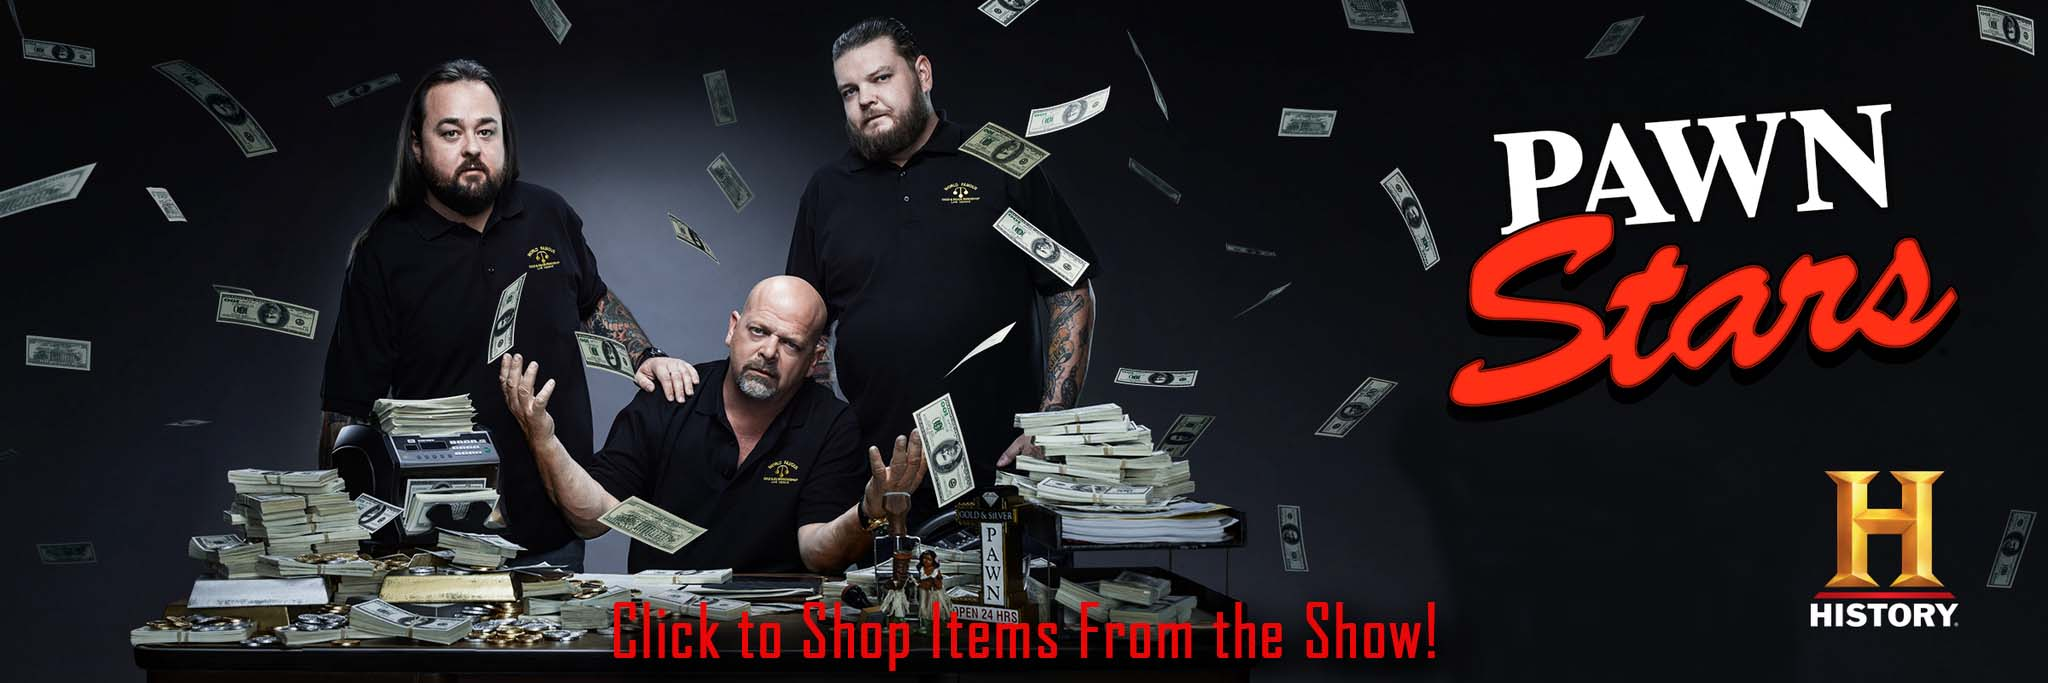 Rick Harrisons Gold Silver Pawn Shop